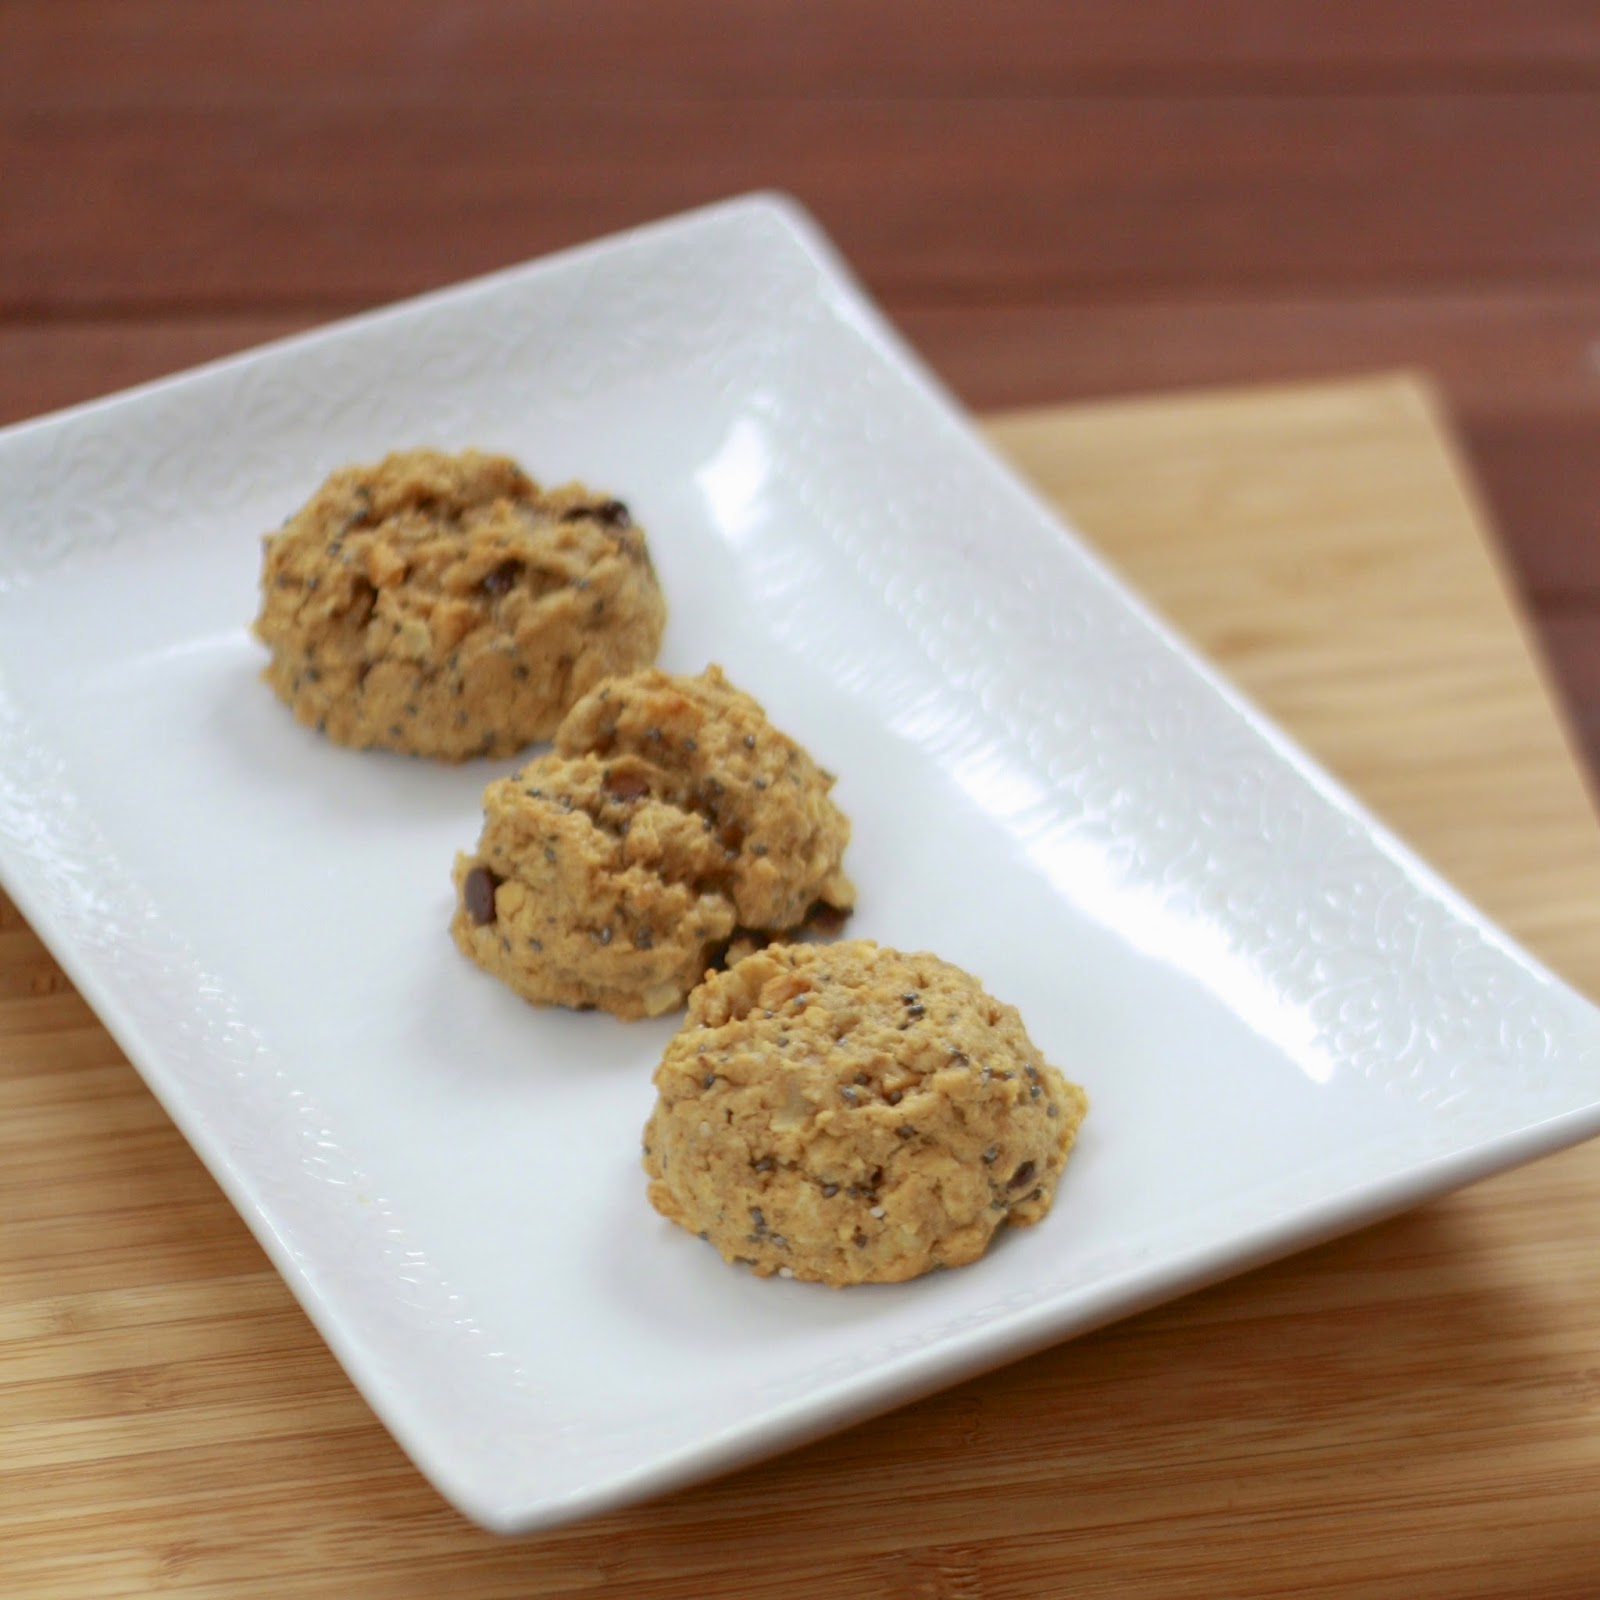 Peanut Butter Oatmeal Cookies with Chia Seeds